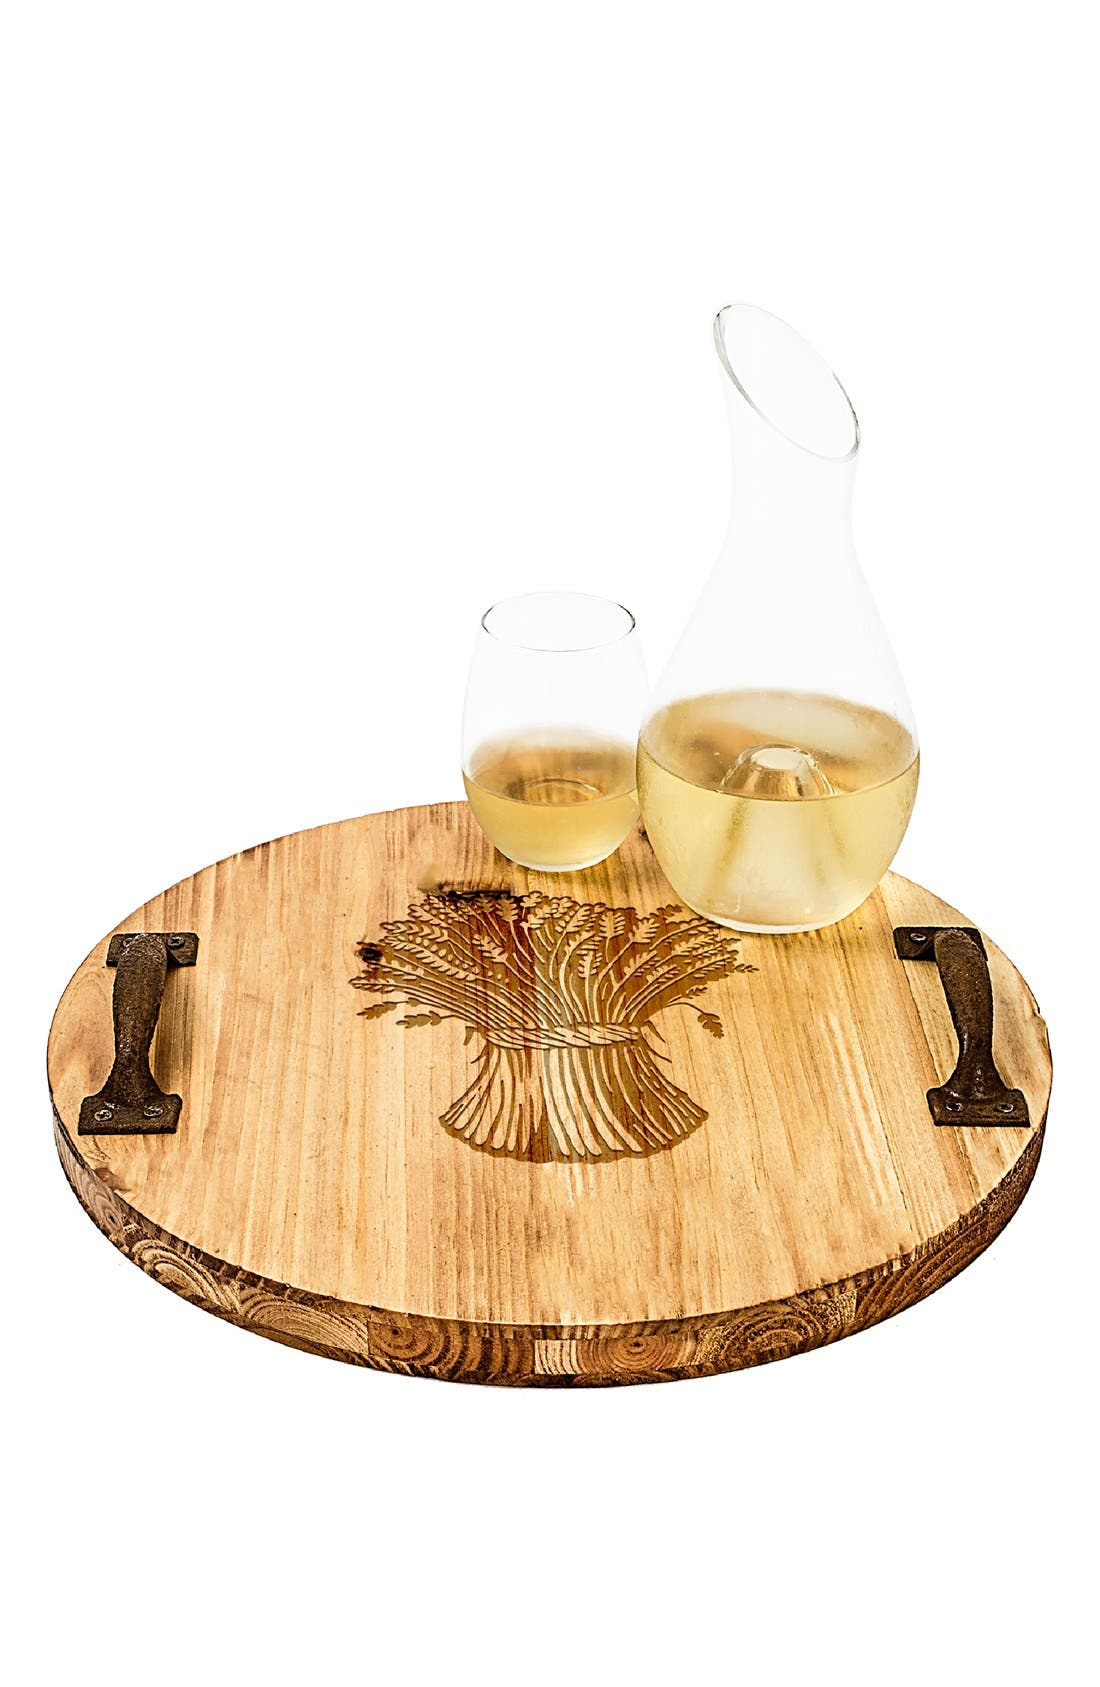 Main Image - Cathy's Concepts 'Wheat Stalk' Rustic Wooden Tray